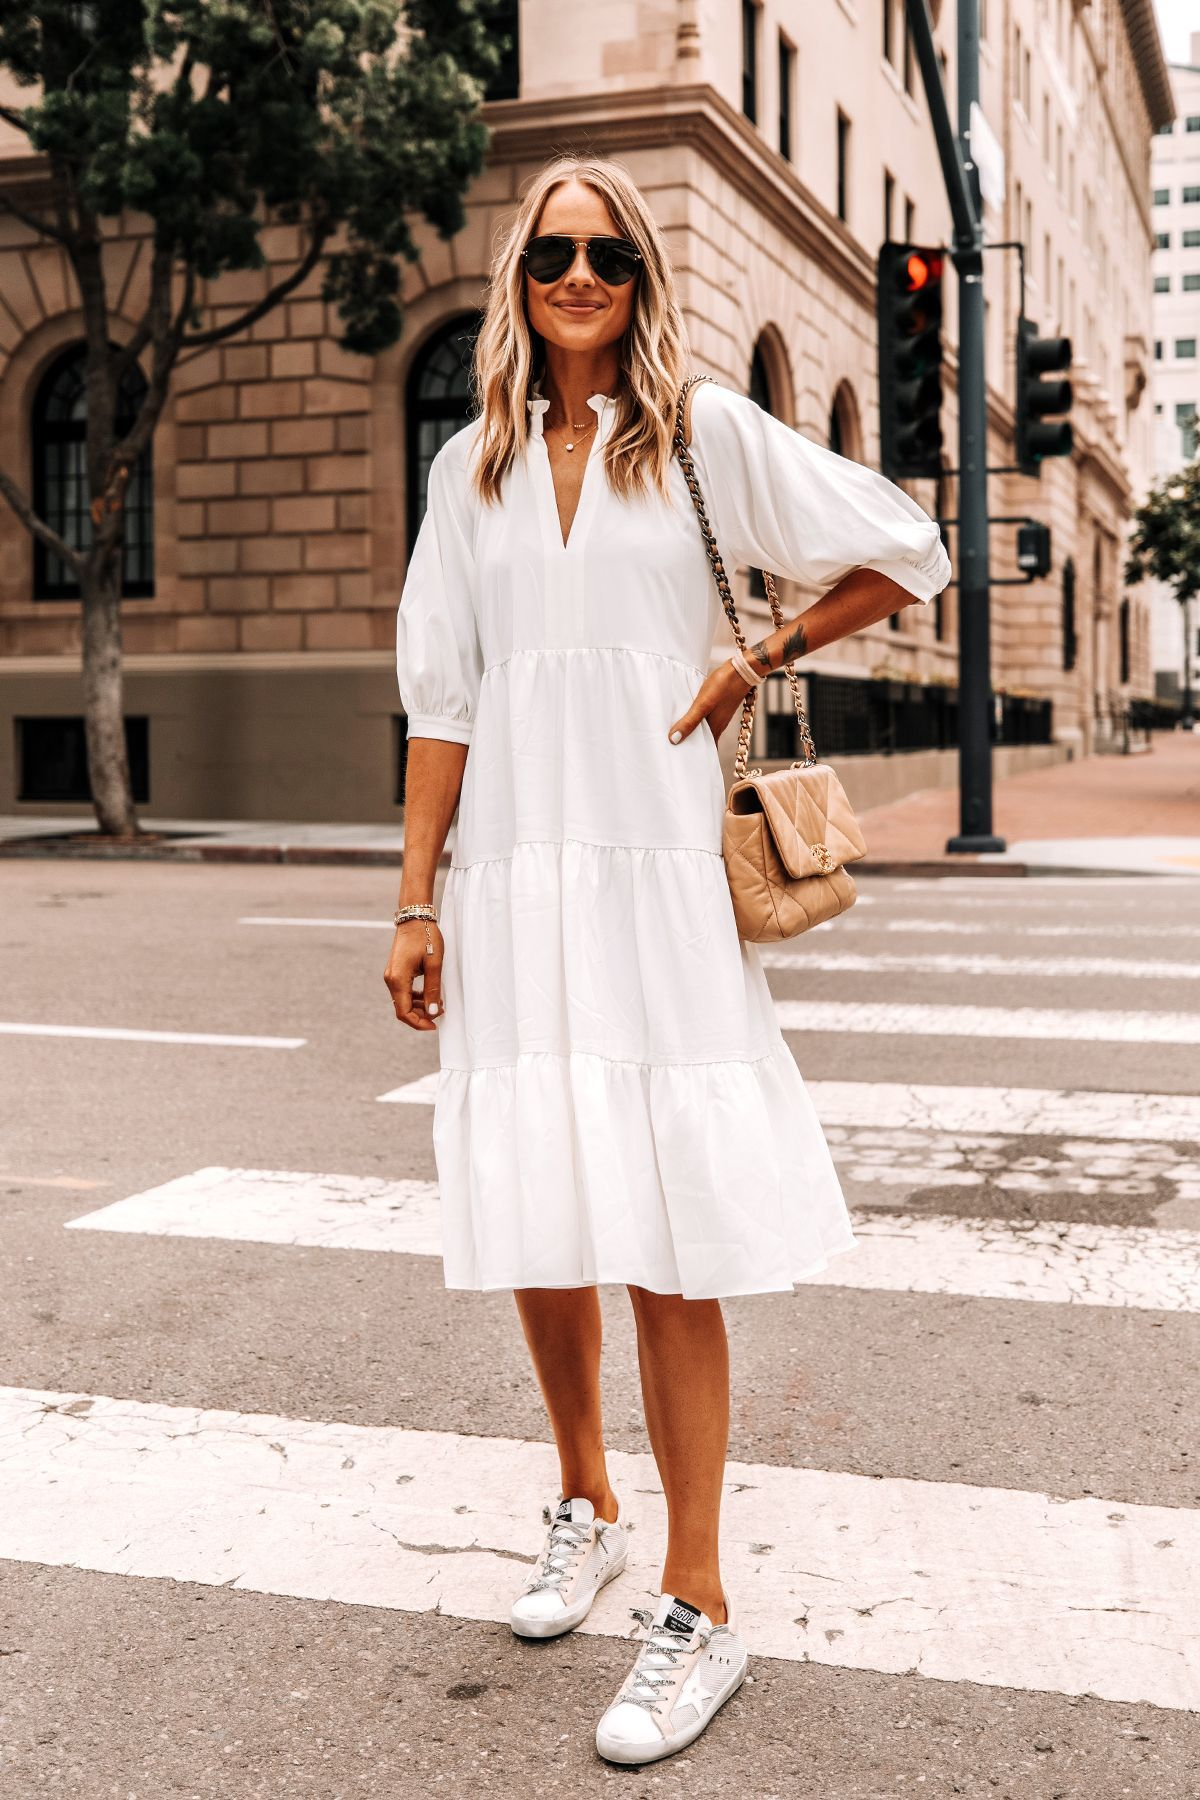 How To Pull Of Wearing A White Summer Dress With Sneakers Fashion Jackson White Dress Summer Fashion Jackson White Dress Sneakers [ 1800 x 1200 Pixel ]